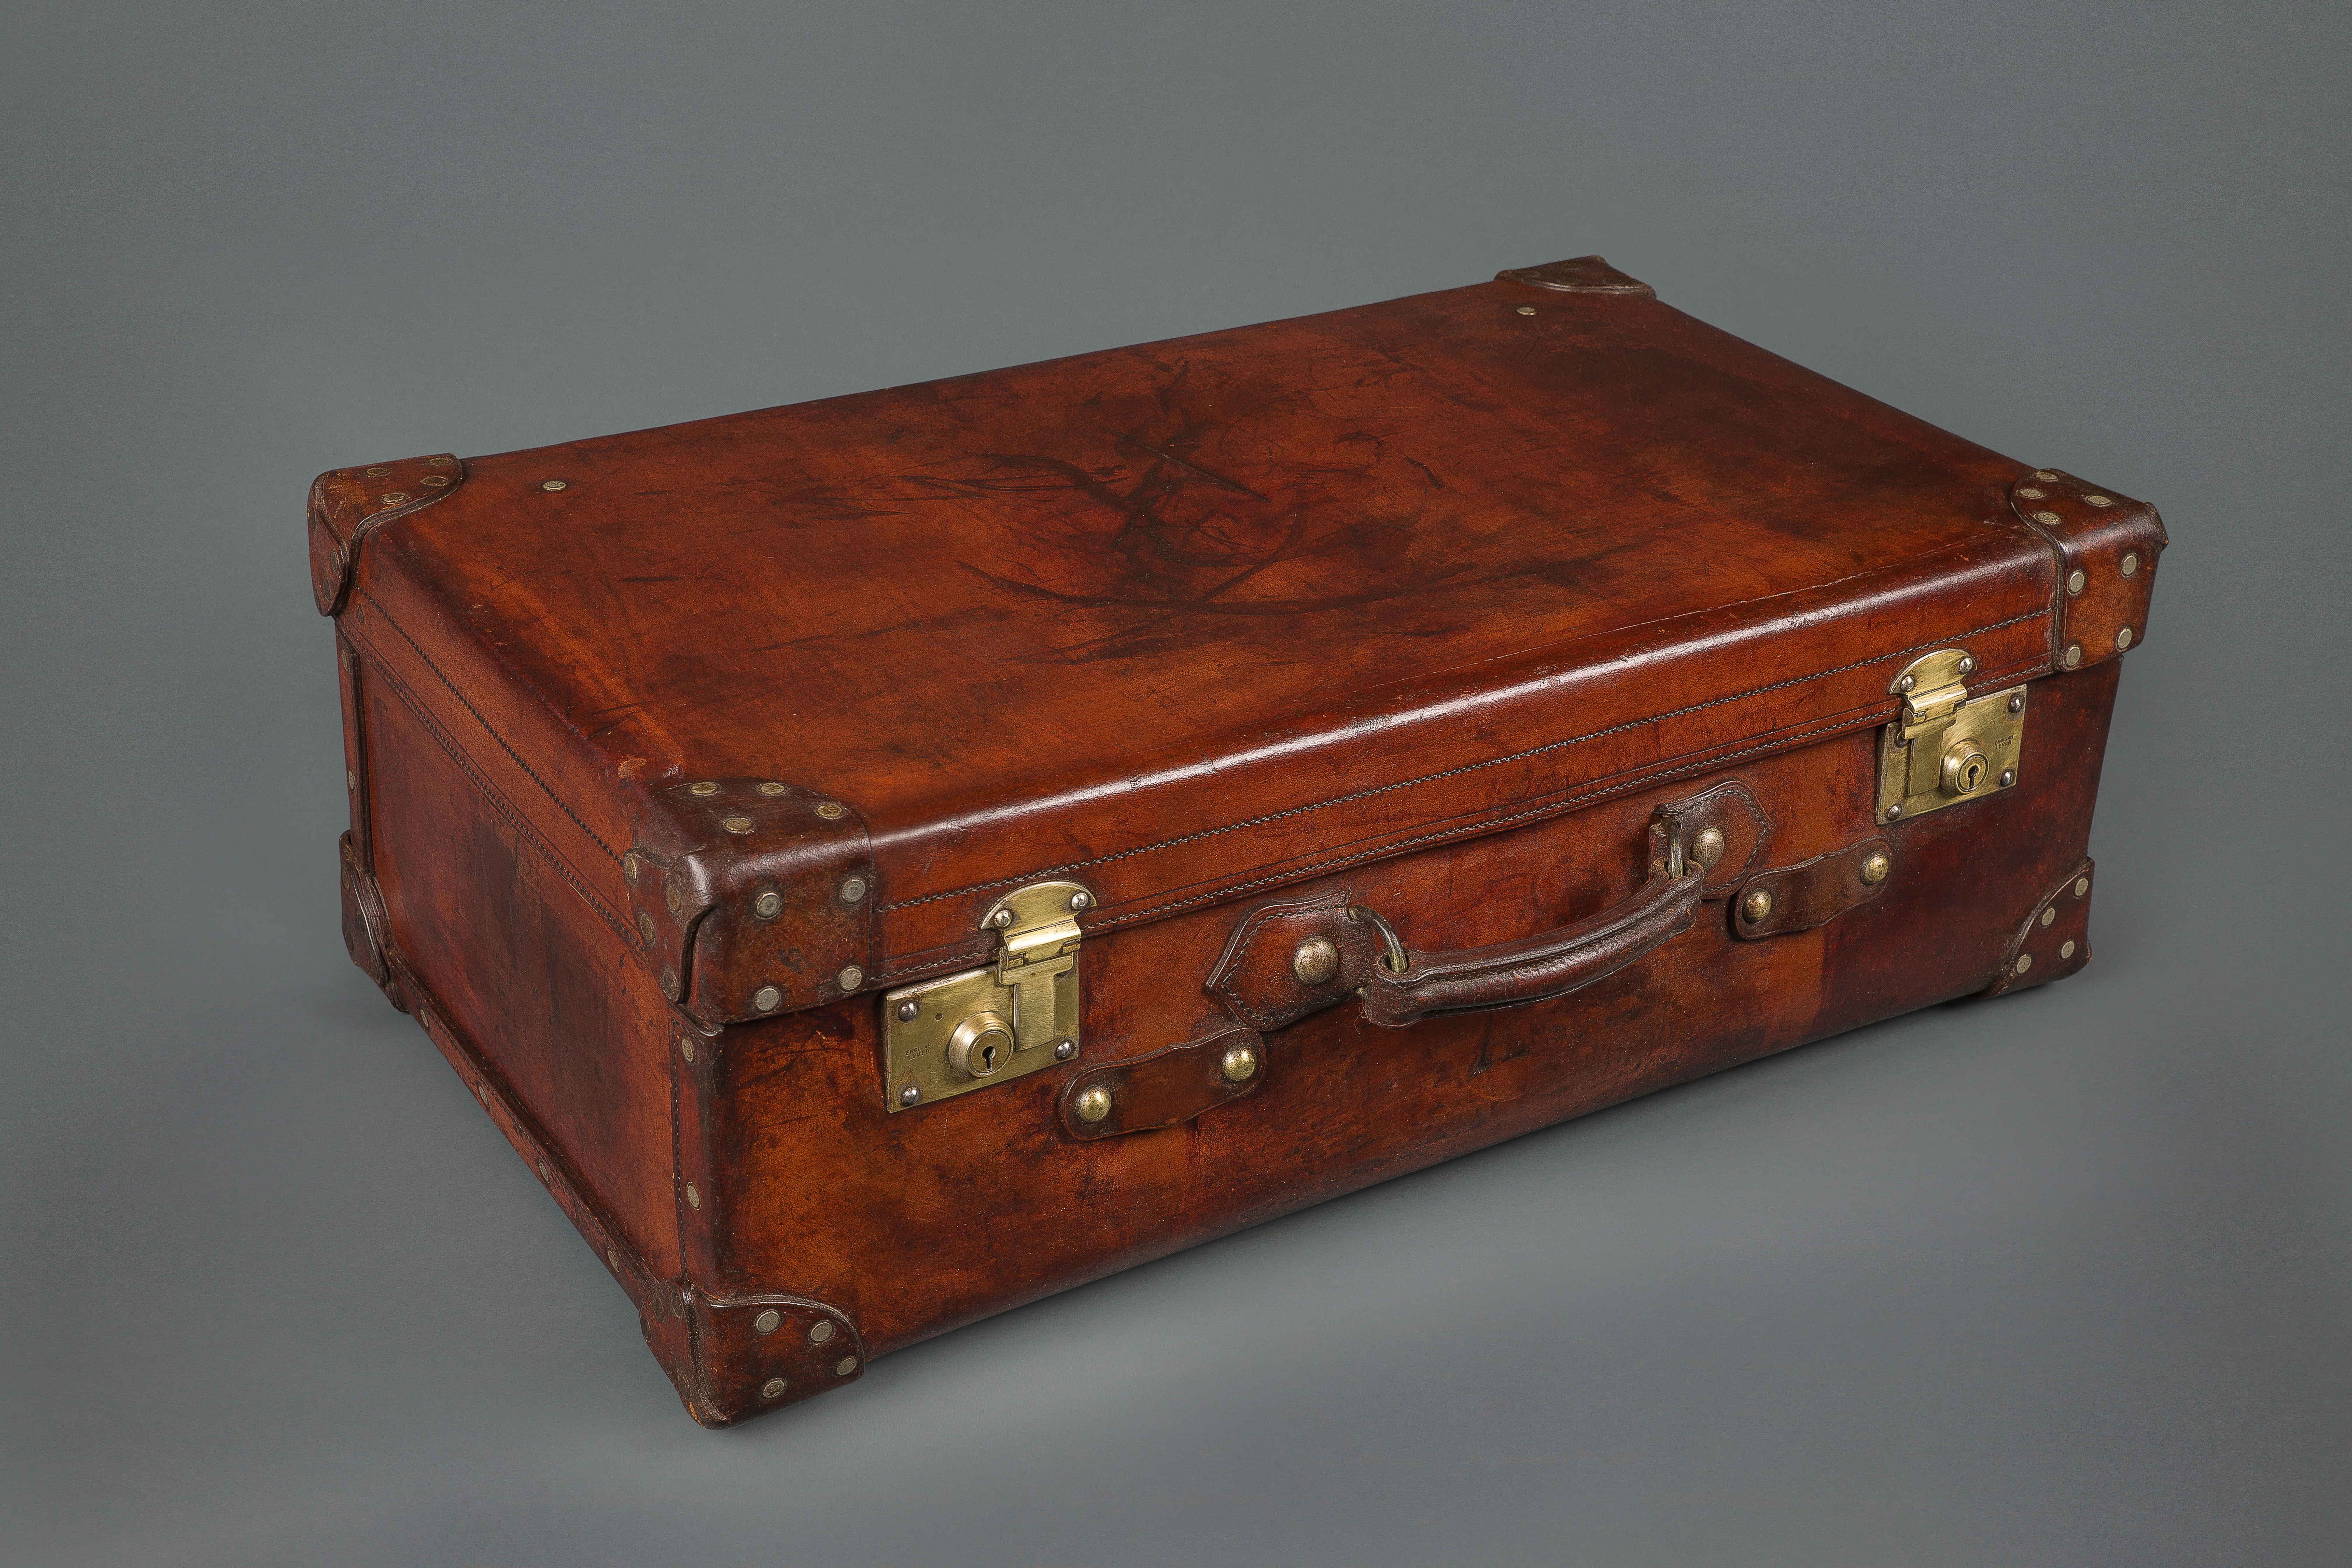 Very Fine 19th Century Leather Suitcase | Michael Pashby Antiques